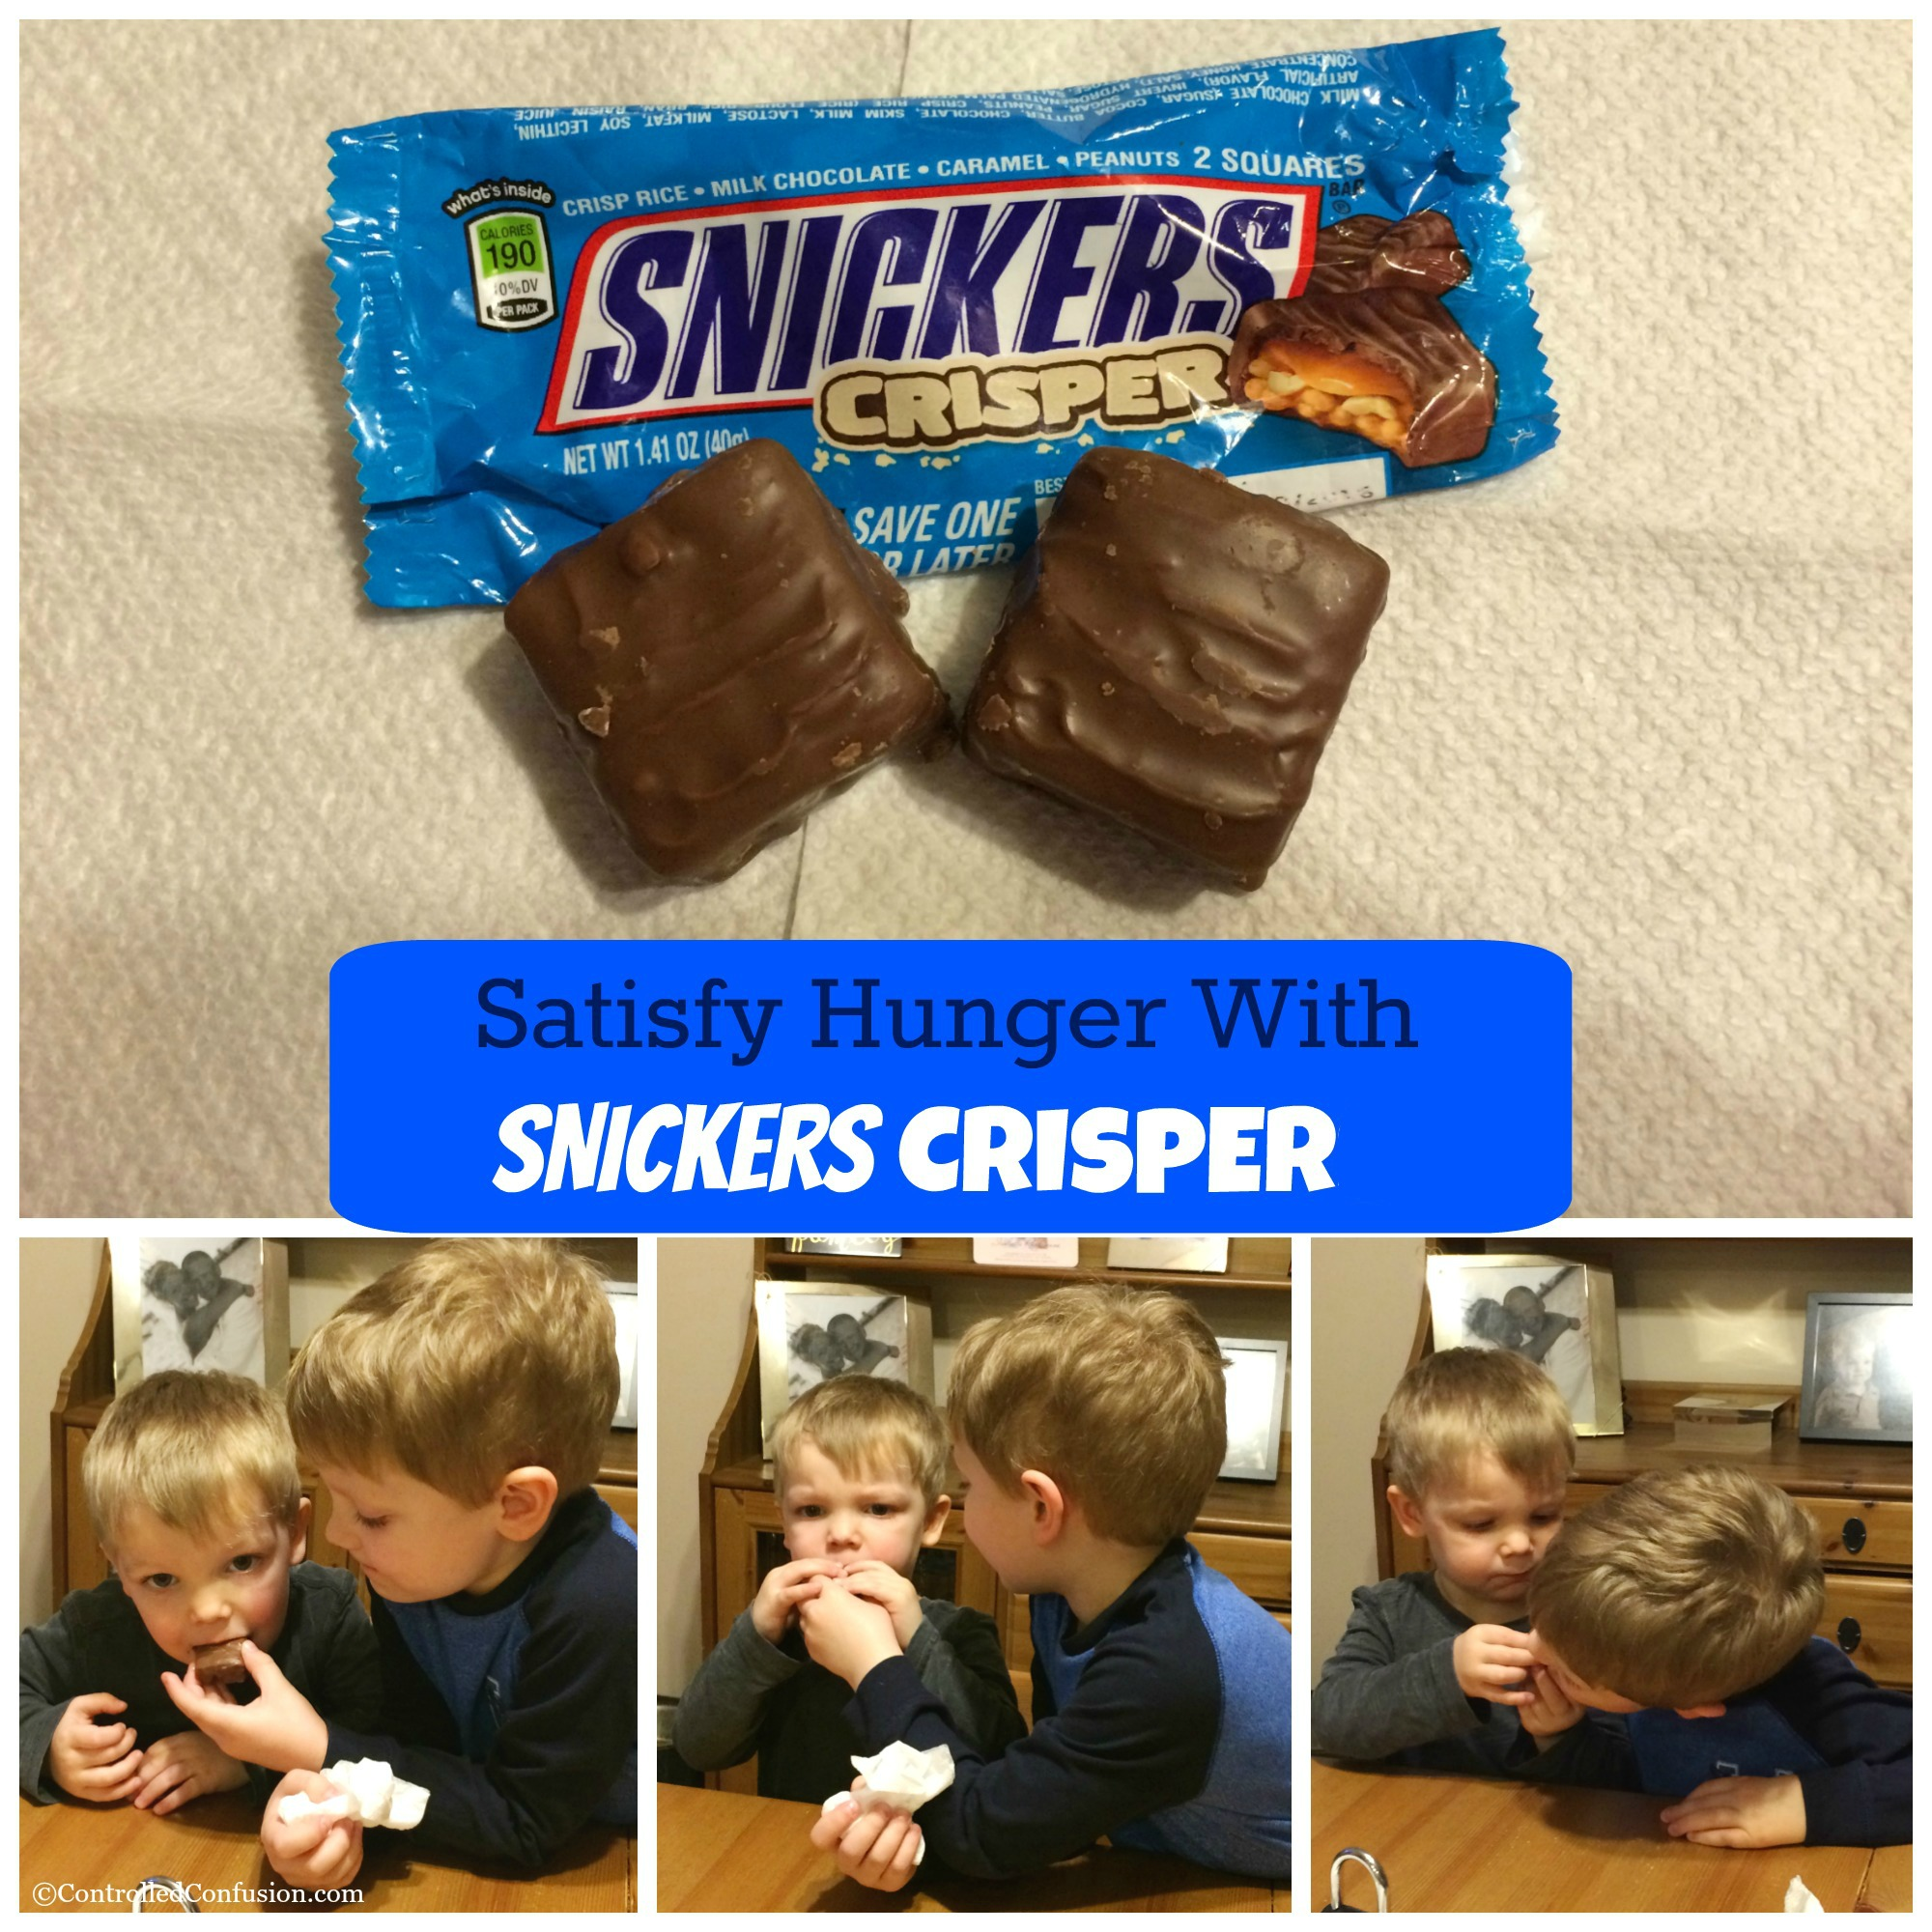 Satisfy Hunger With SNICKERS Crisper